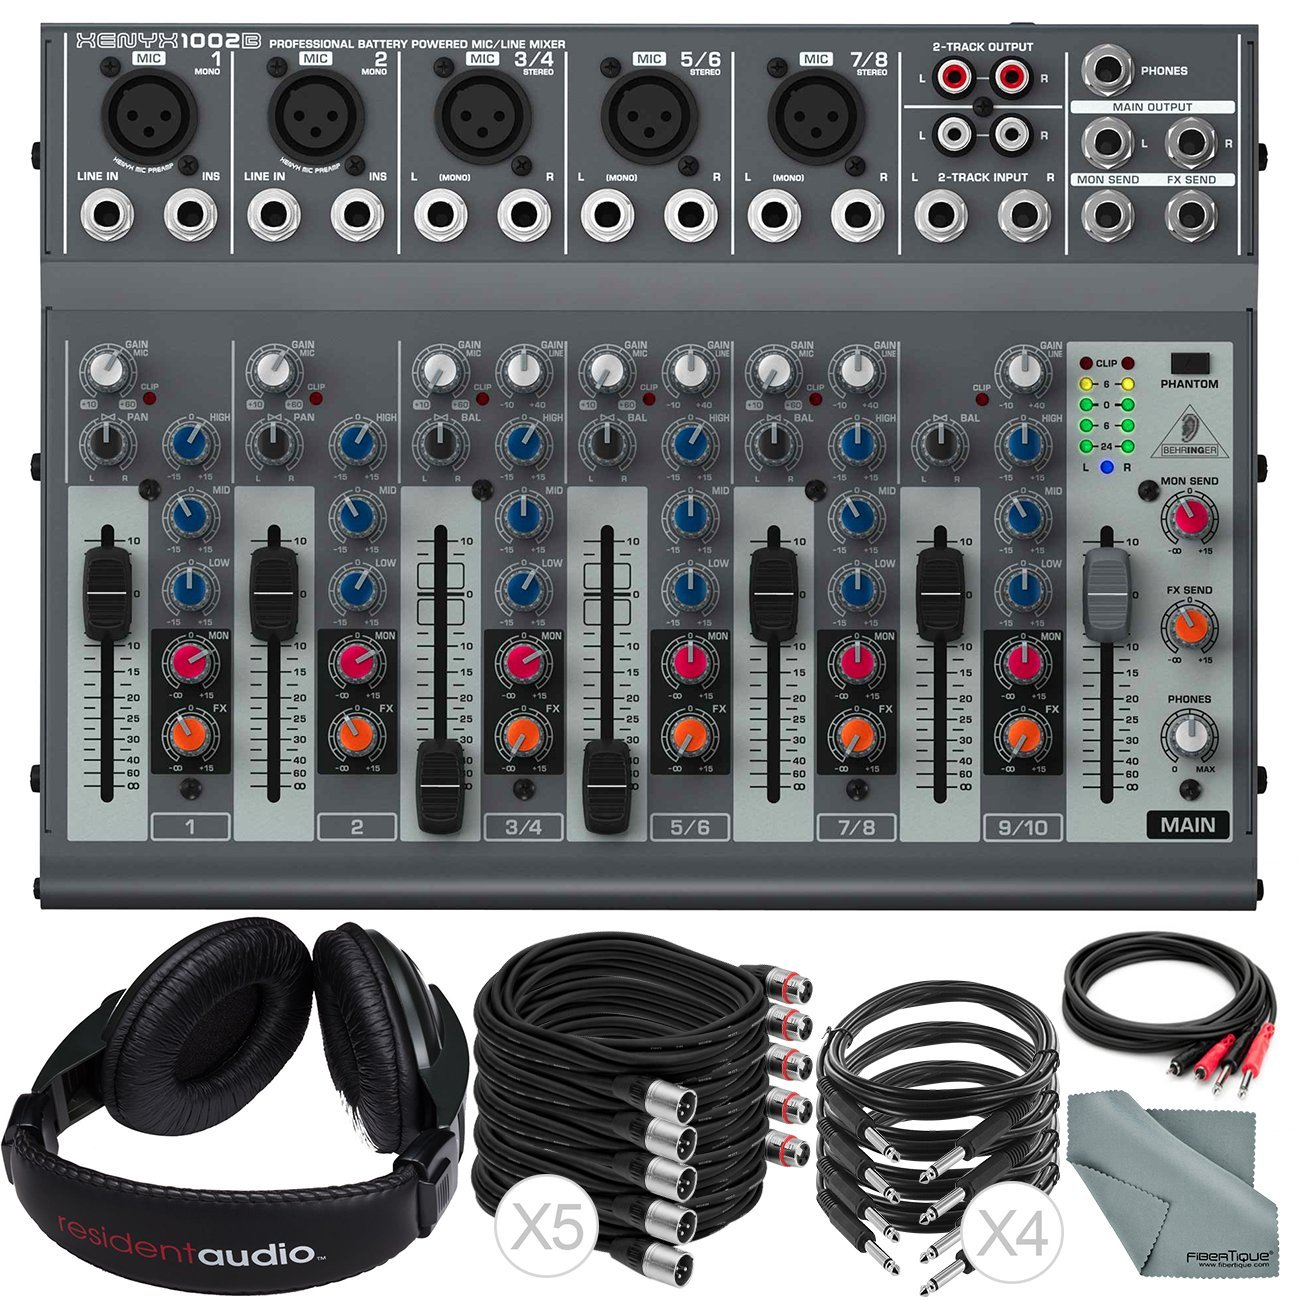 Behringer XENYX 1002B 10-Channel Audio Mixer and Accessory Bundle with 10X Cables + Closed-Back Headphones + Fibertique Cleaning Cloth